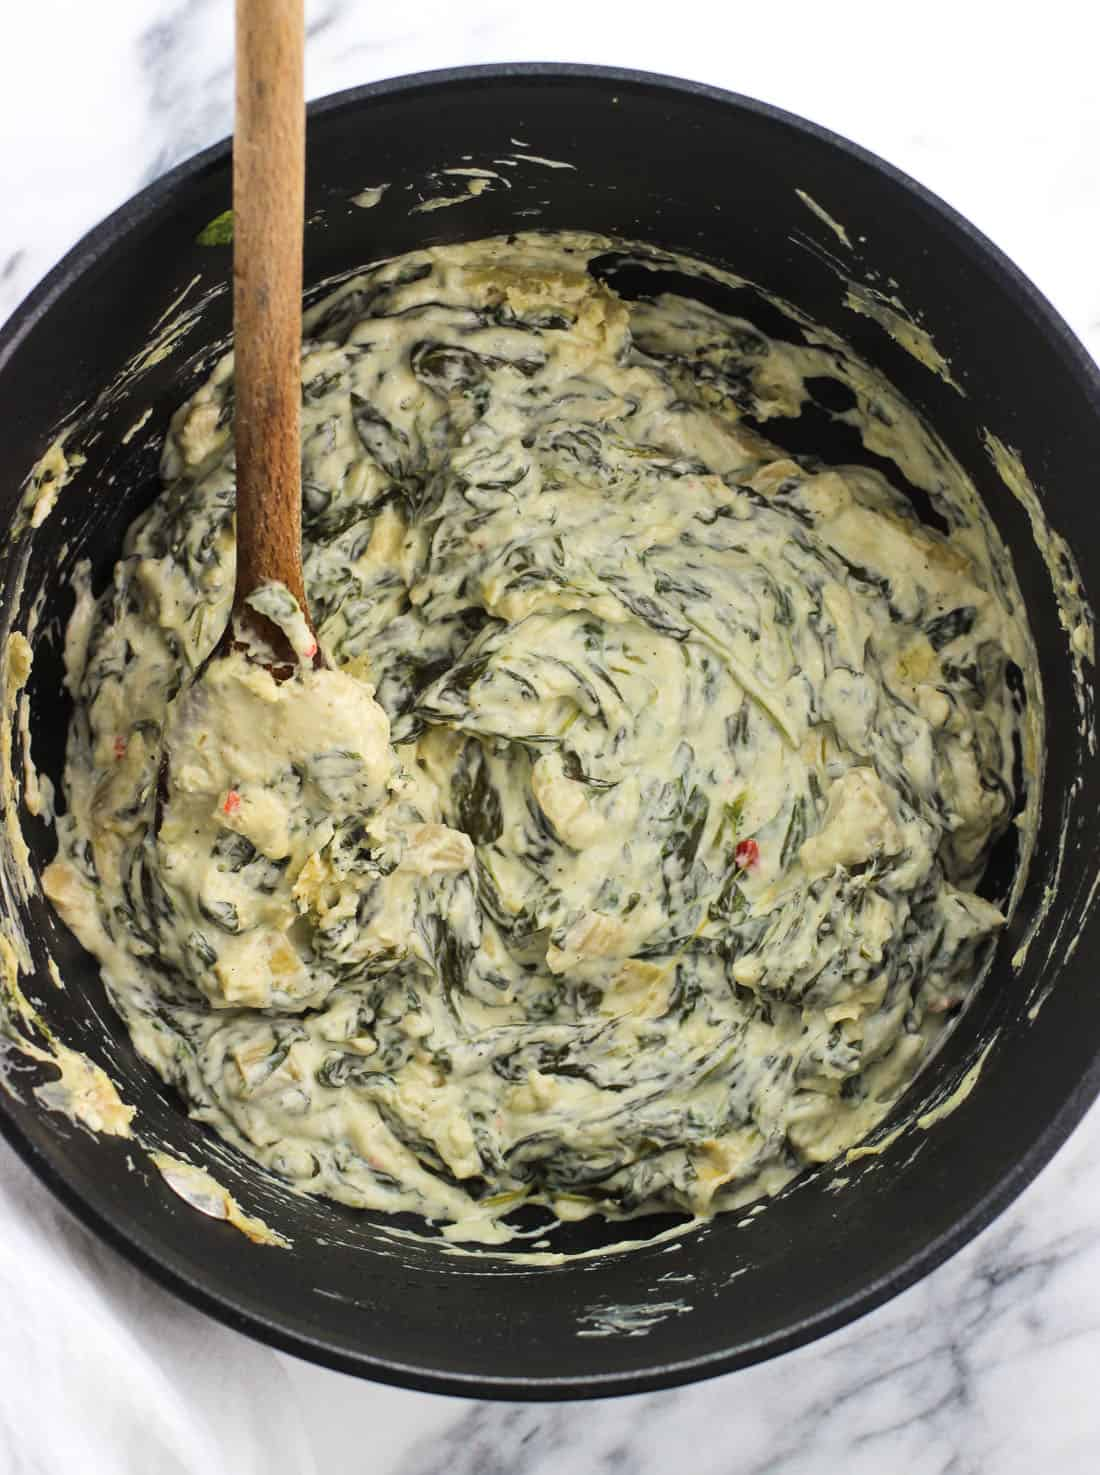 This recipe for spinach artichoke smashed potatoes is a mash-up of side dish and appetizer favorites. Enjoy the crisp exterior of smashed buttery yellow potatoes along with a dollop of creamy spinach artichoke dip using fresh spinach for the ultimate in comfort food.